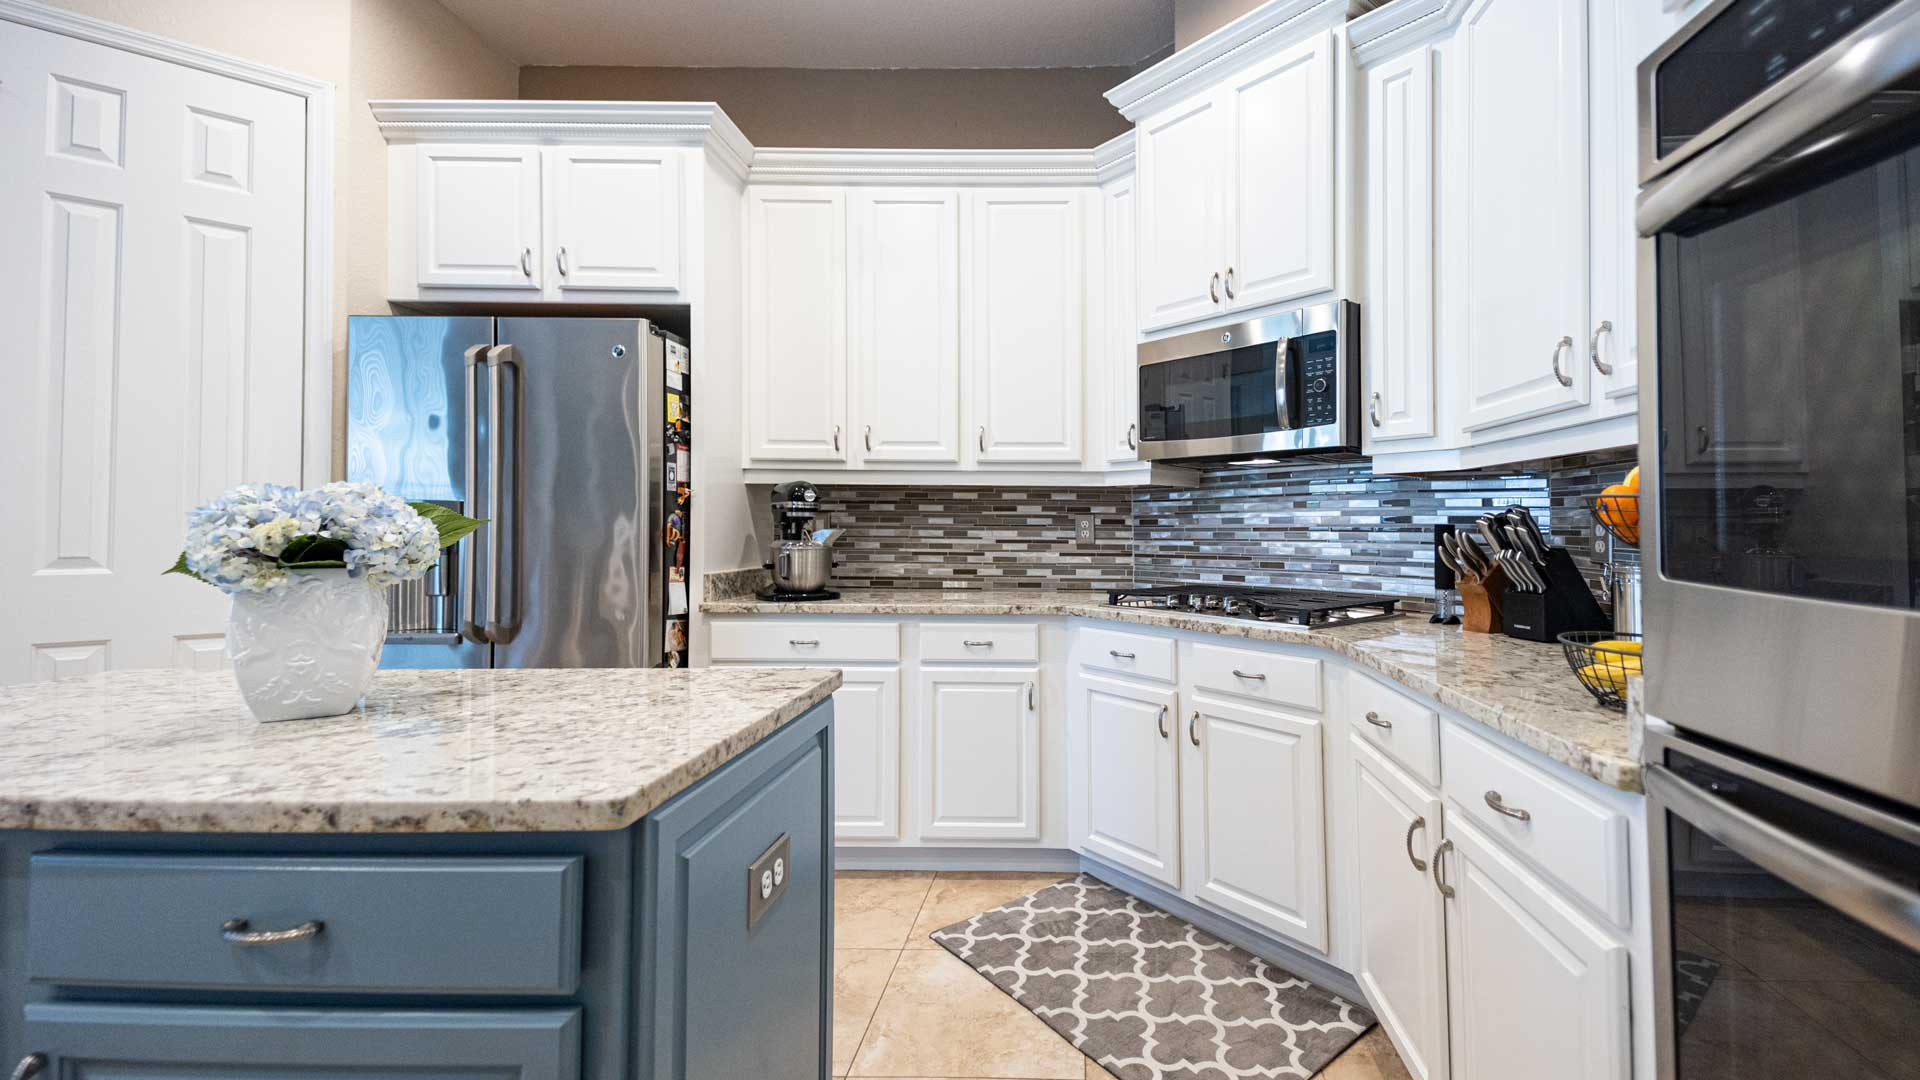 Complete kitchen remodel completed at a home in Lakeland, Florida.